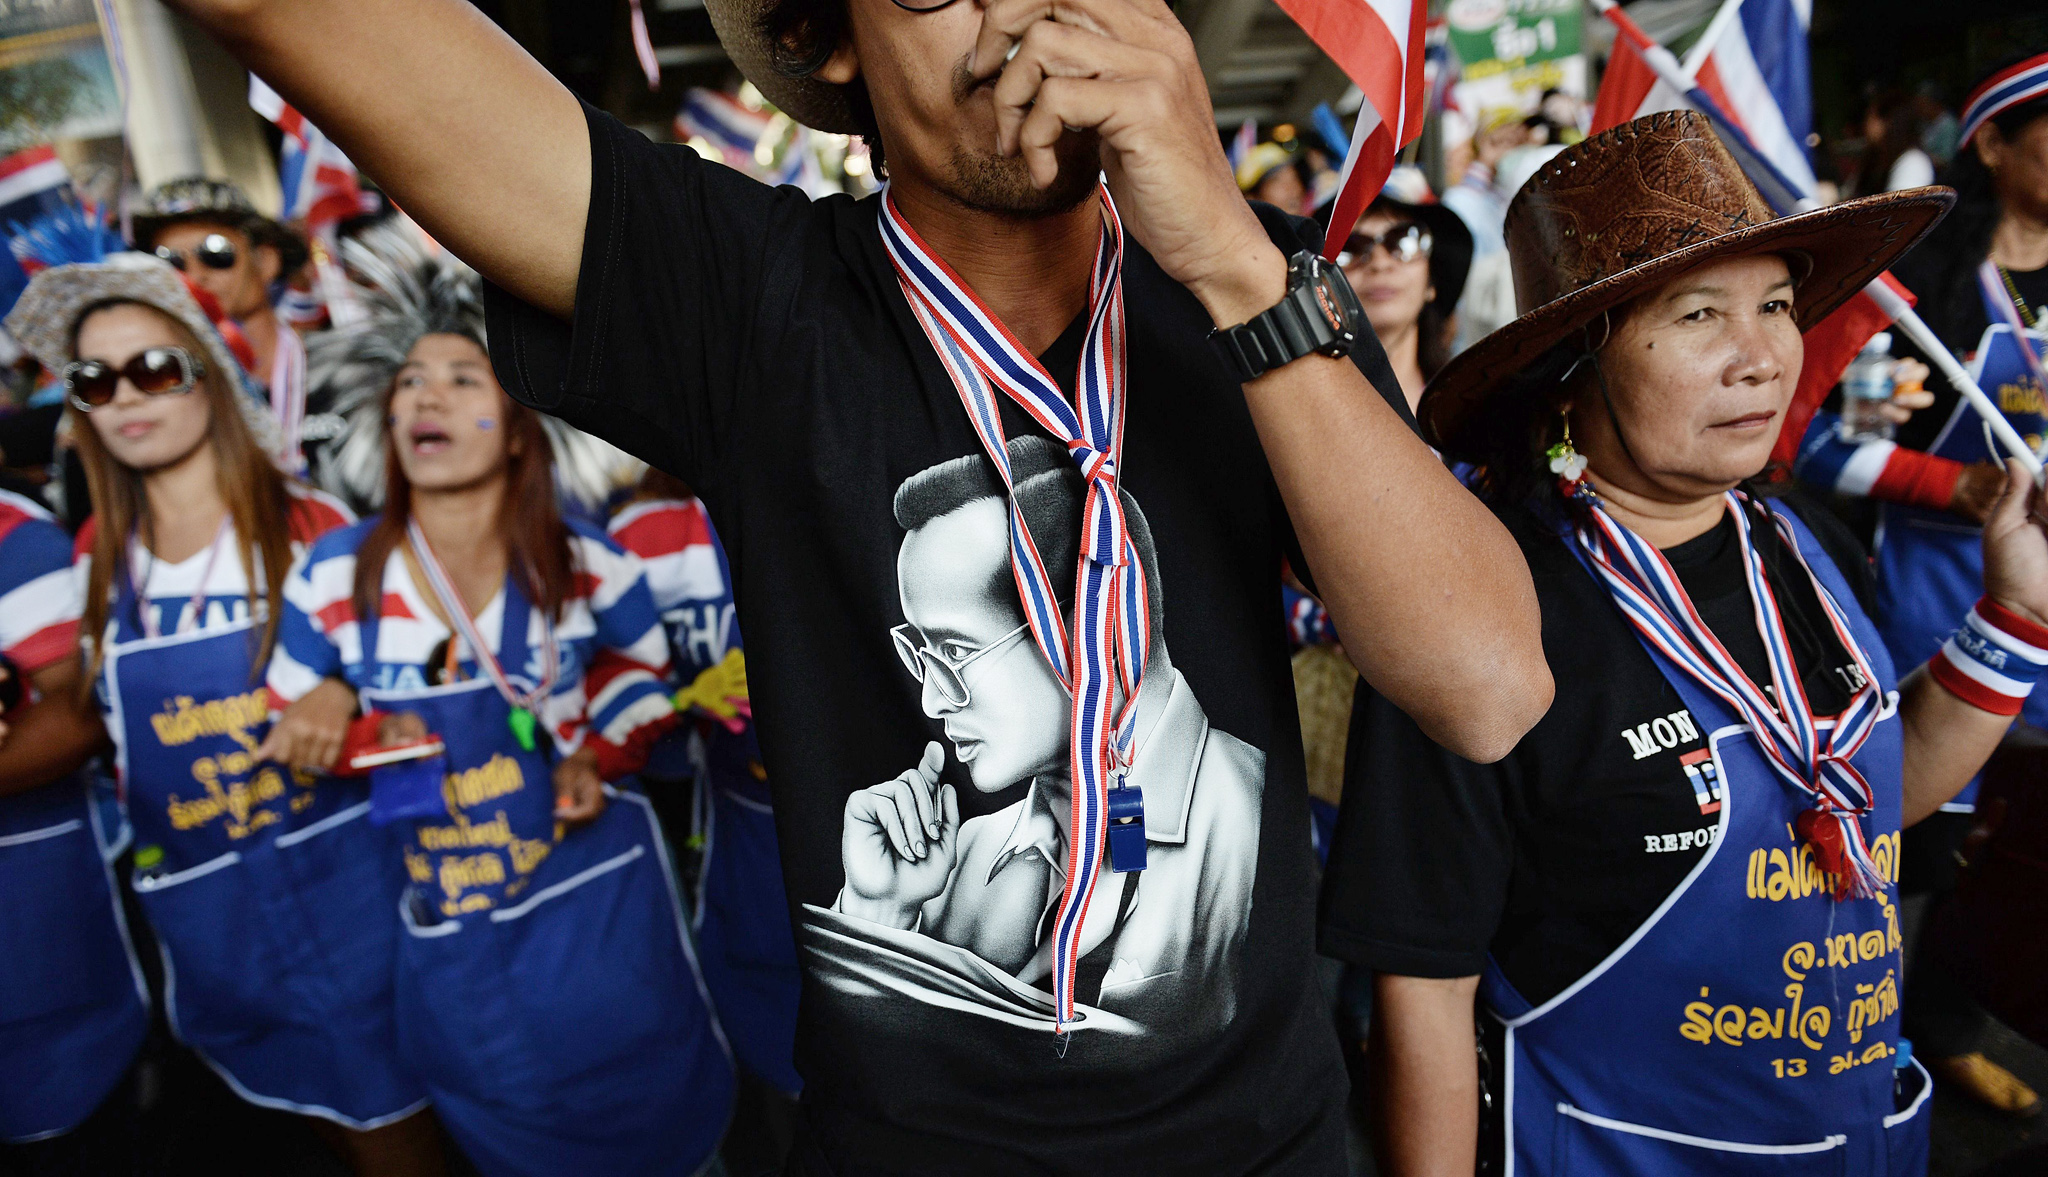 "A Thai anti-government protester wearing...A Thai anti-government protester wearing a T-shirt carrying a picture of King Bhumibol Adulyadej, blows a whistles as he takes part in a march through downtown Bangkok on January 15, 2014.  Two people were wounded in a shooting at an opposition rally in the Thai capital on January 15, authorities said, as protest leaders marched through plush city neighbourhoods in their bid to oust the premier. The demonstrators, backed by the kingdom's royalist establishment, want Prime Minister Yingluck Shinawatra to resign to make way for an unelected ""people's council"" that would oversee reforms to curb the political dominance of her billionaire brother Thaksin."